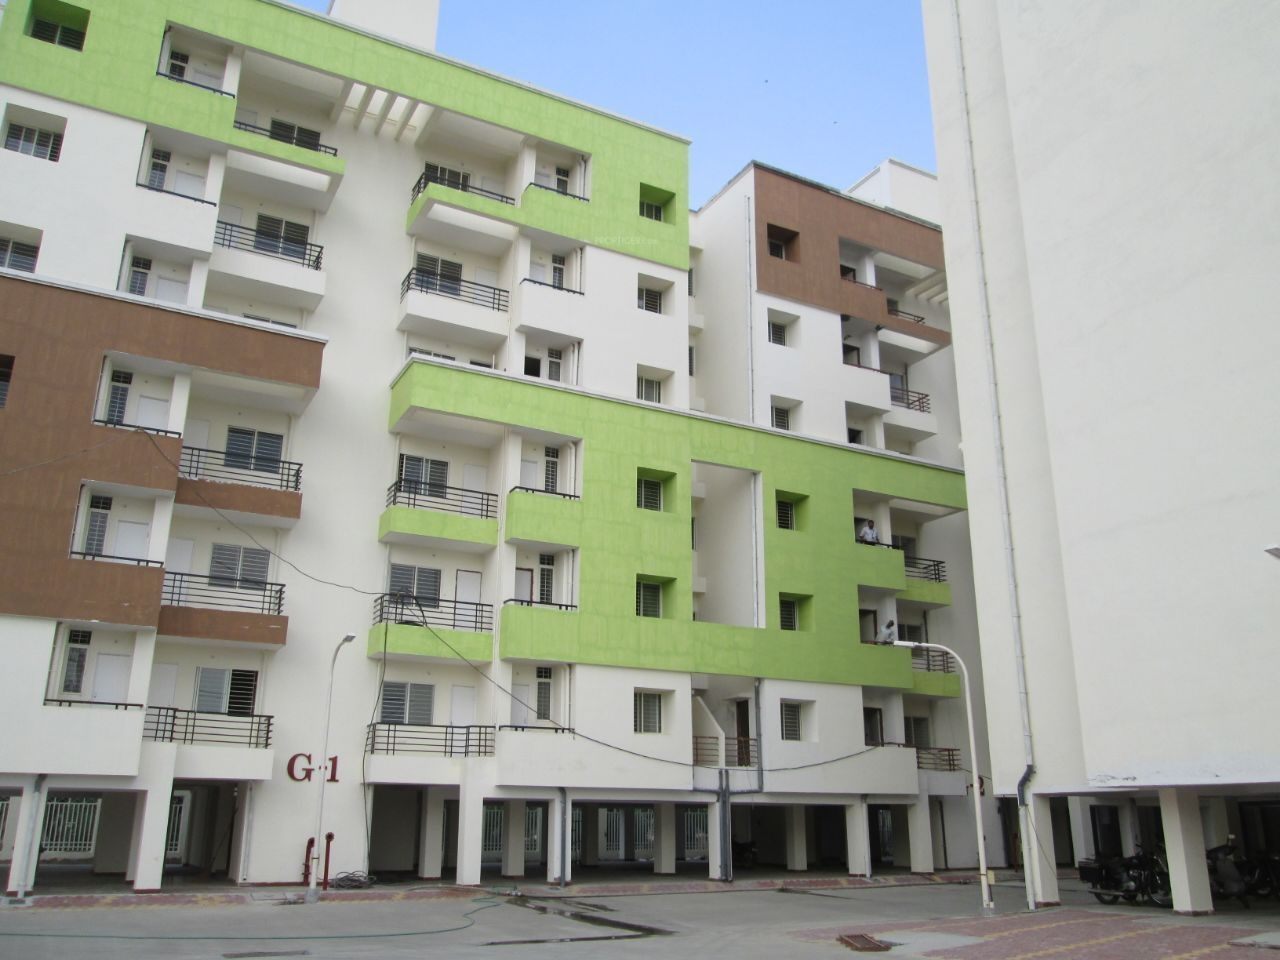 894 Sq Ft 2 Bhk 2t Apartment For Sale In Fortune Builders Divine City Hoshangabad Road Bhopal